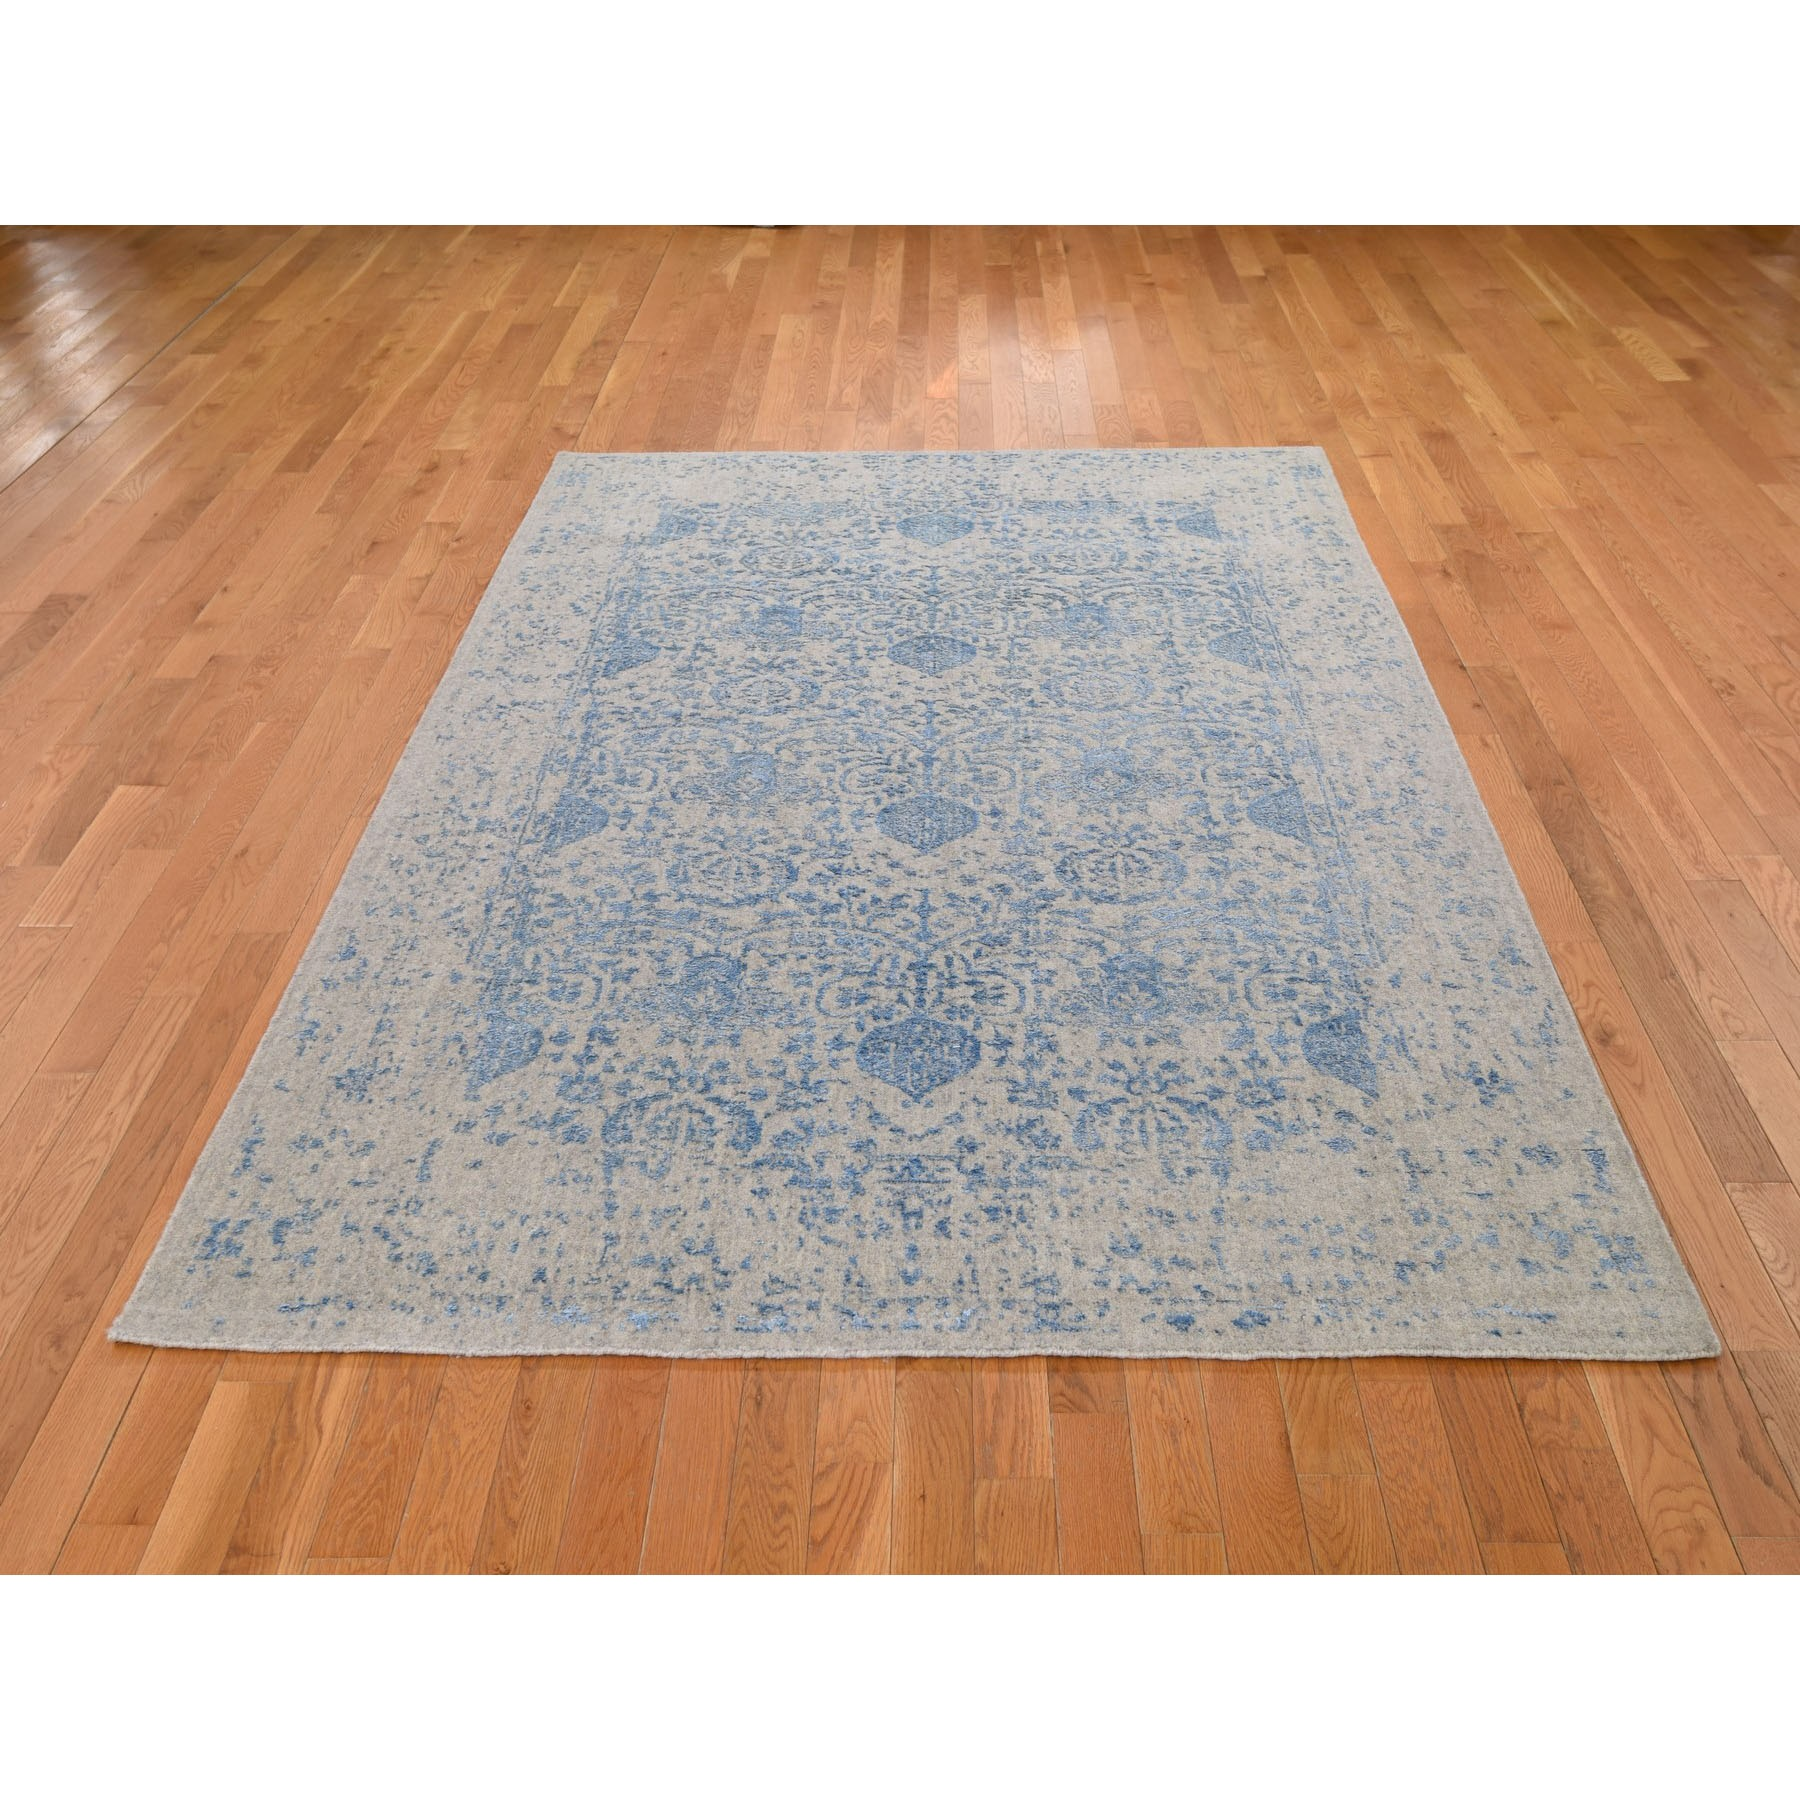 "5'10""x8'9"" Hand Loomed Broken Pomegranate Design Tone on Tone Oriental Rug"